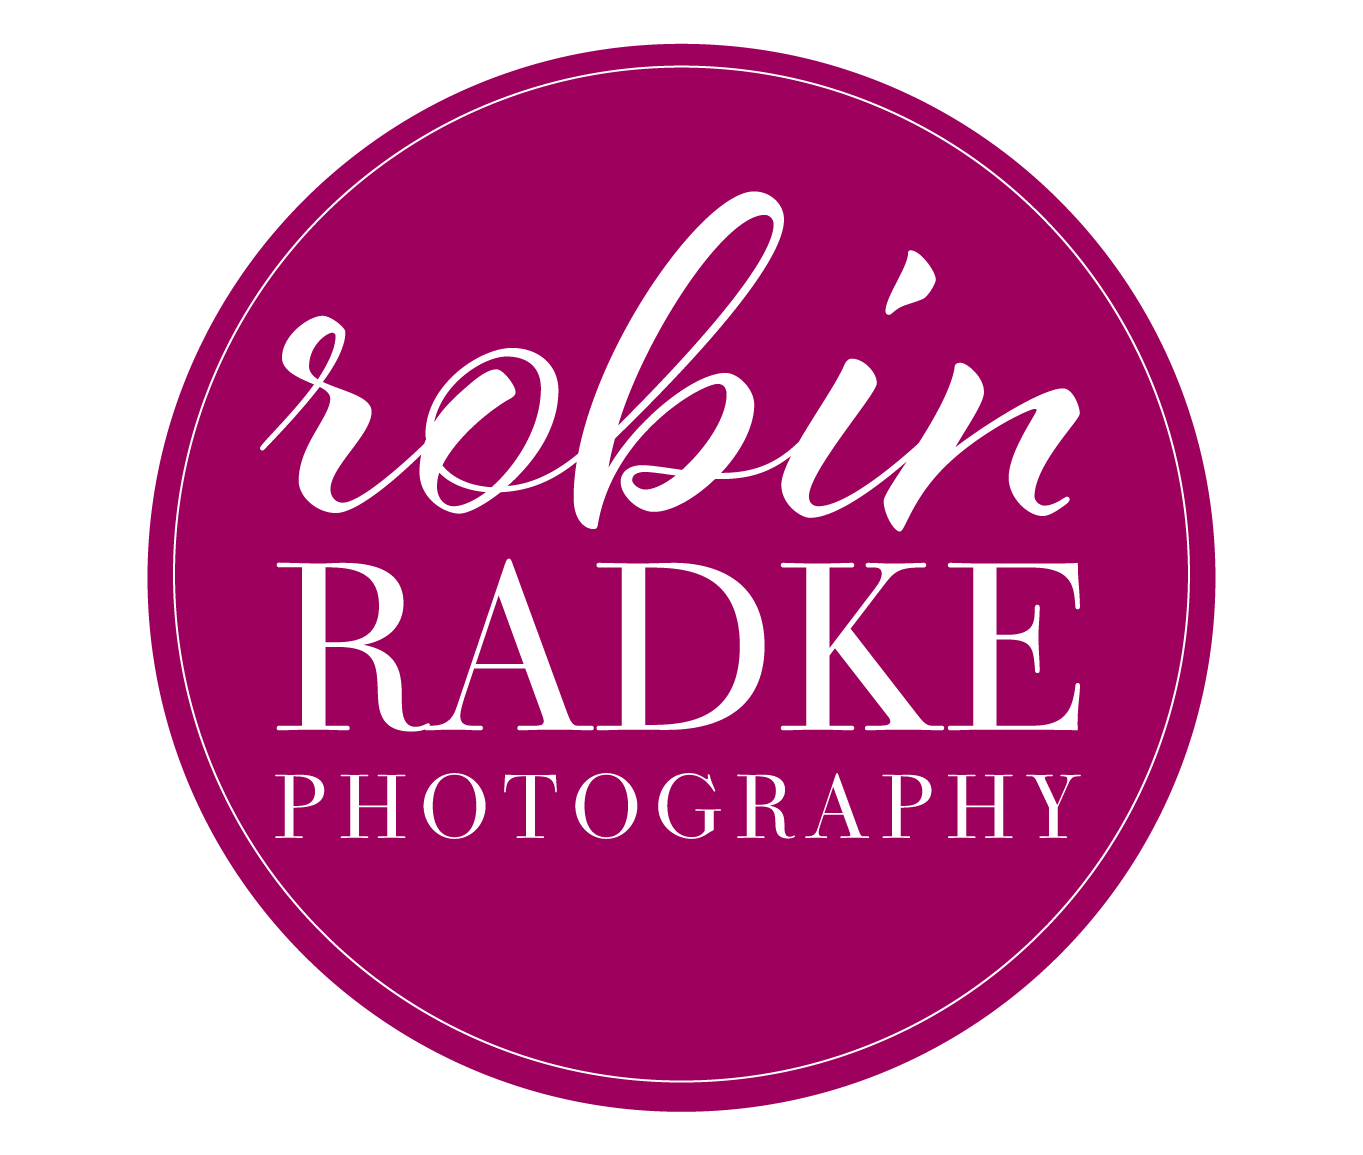 Robin Radke Photography